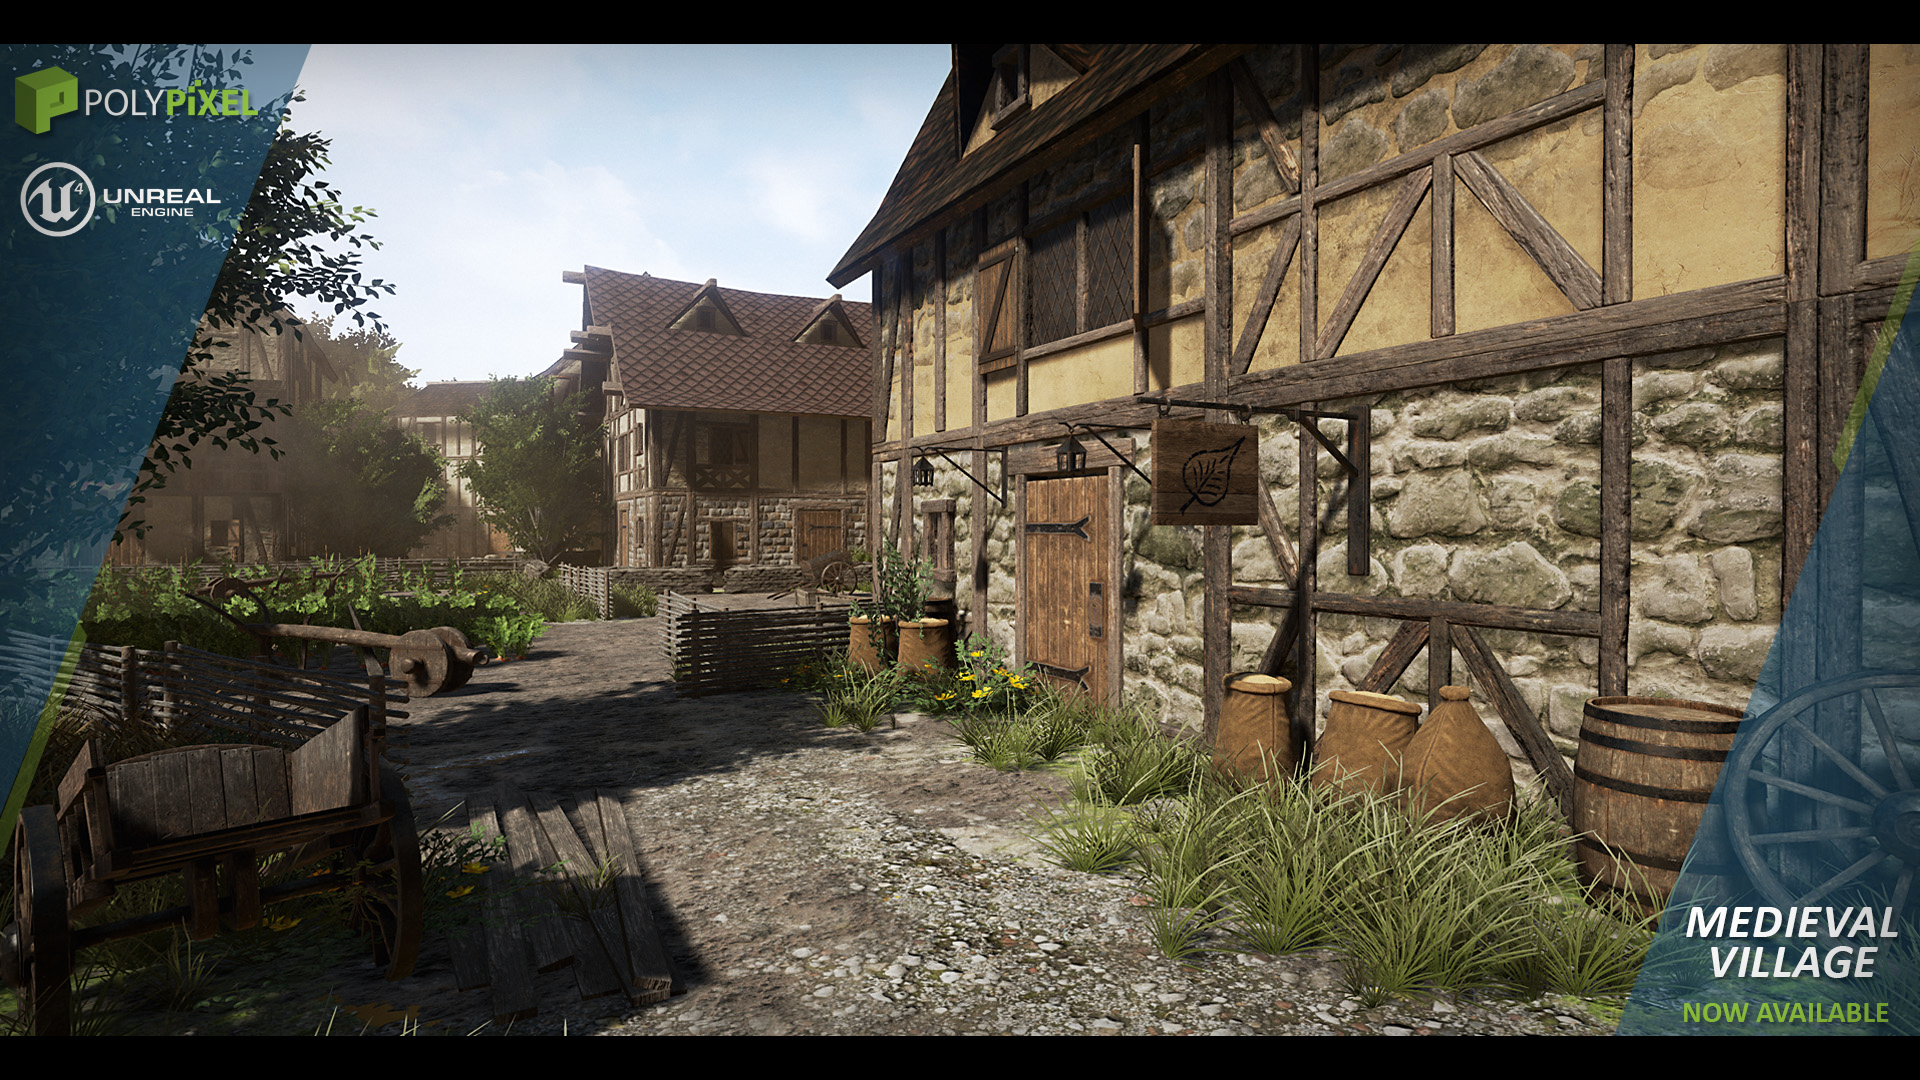 Realistic Home Design Games Free Medieval Village By Polypixel In Environments Ue4